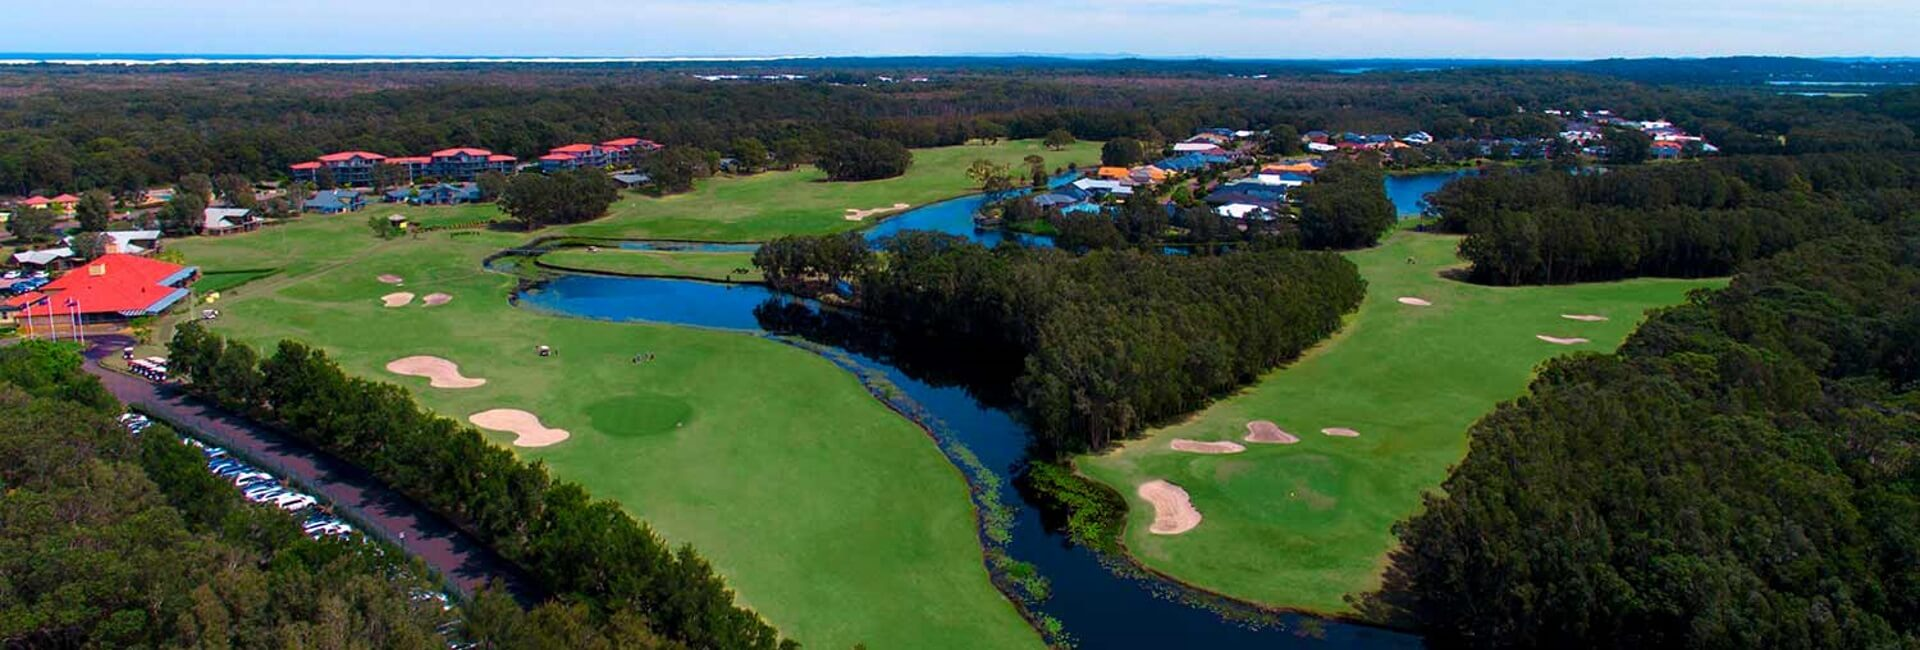 Aerial image of Horizons Golf Resort